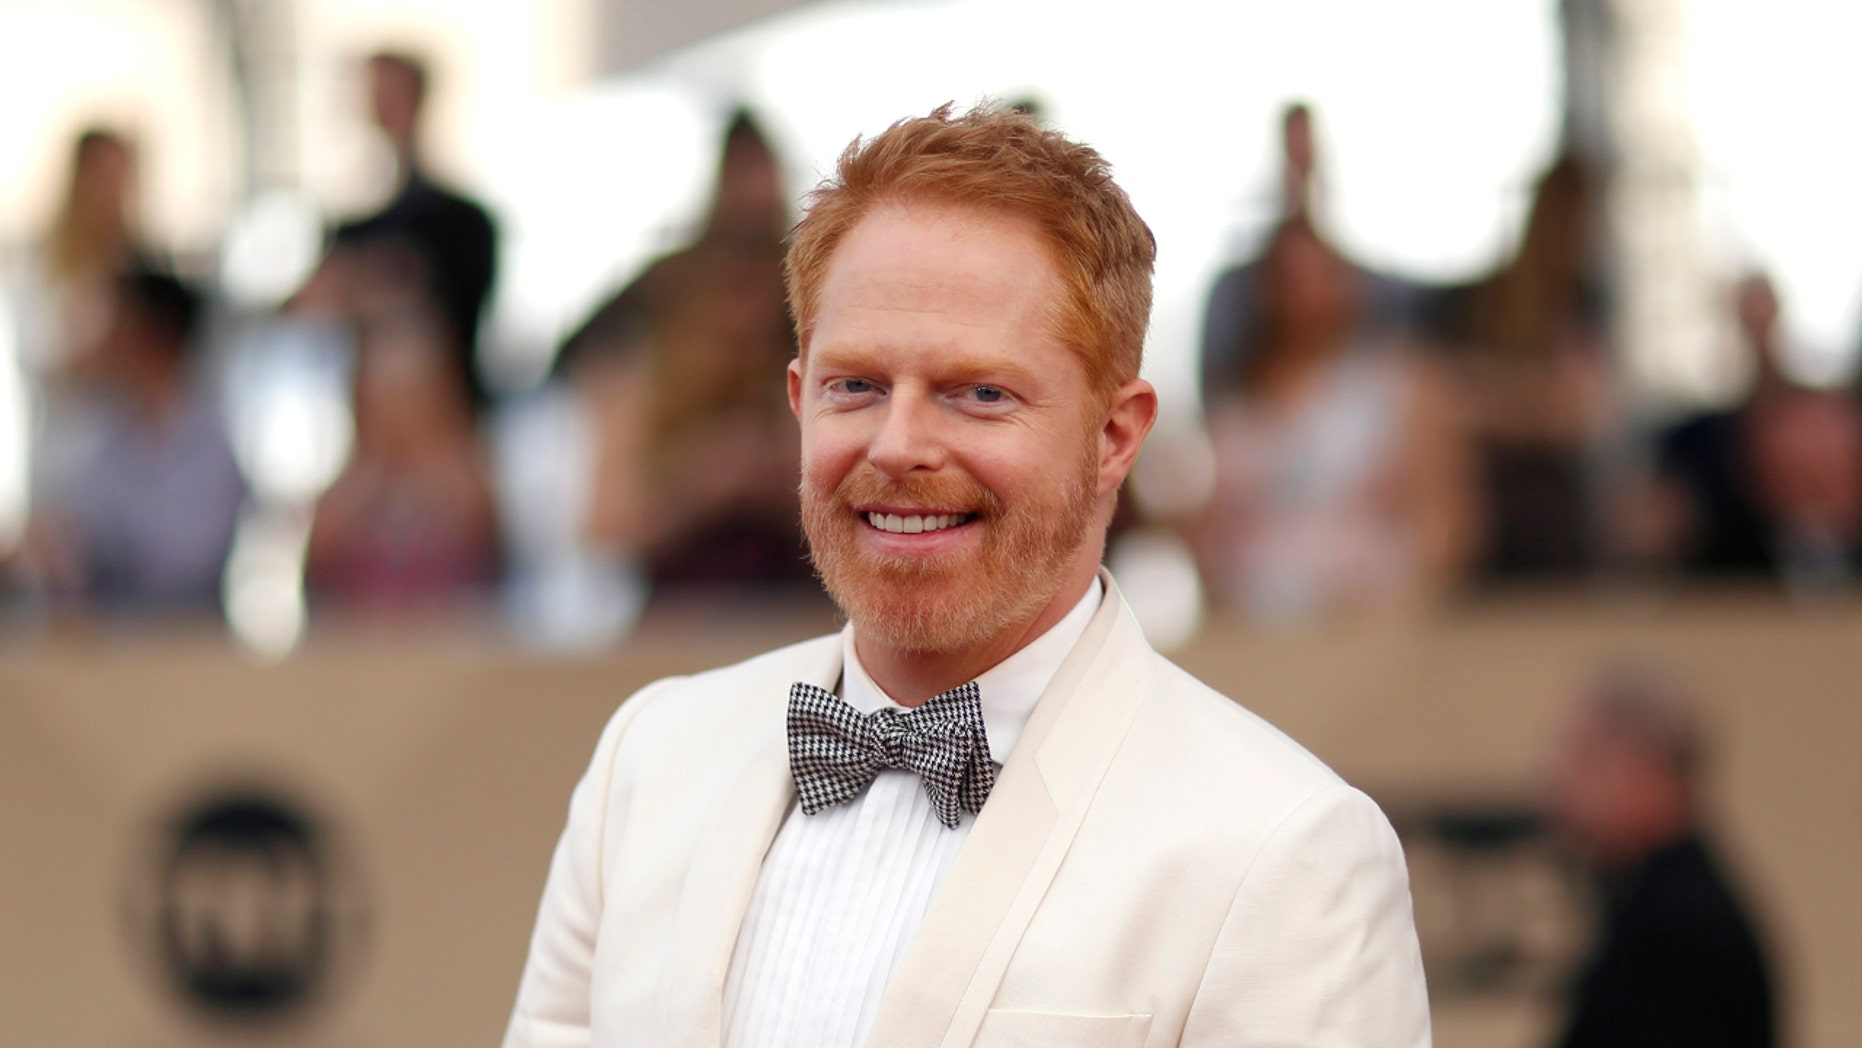 Actor Jesse Tyler Ferguson arrives at the 23rd Screen Actors Guild Awards in Los Angeles, California, U.S., January 29, 2017.